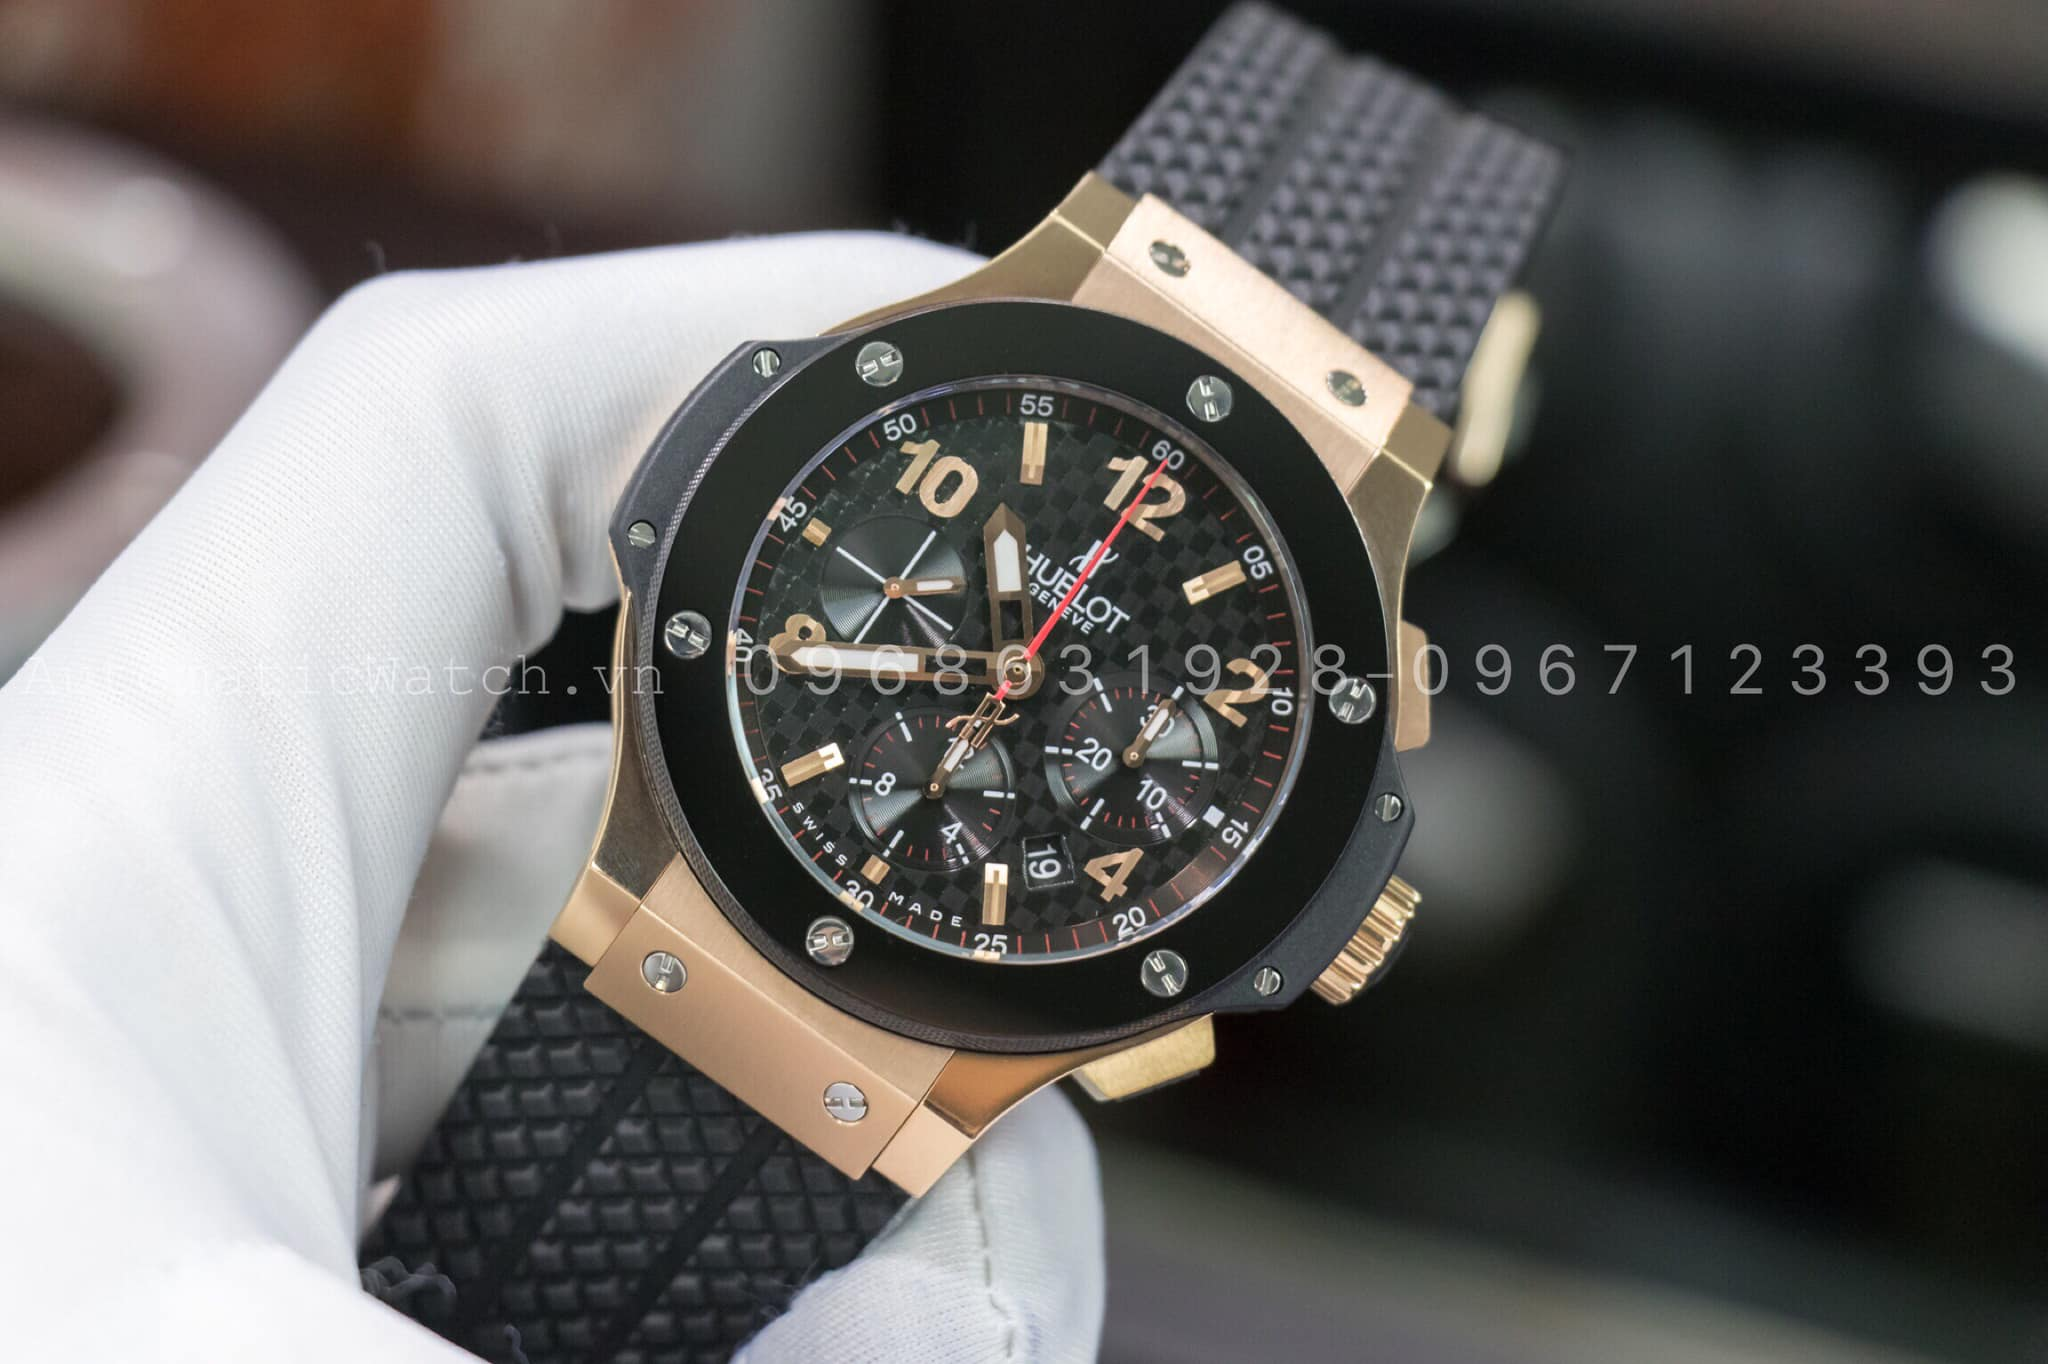 Đồng hồ Hublot Replica Big Bang Automatic size 44mm